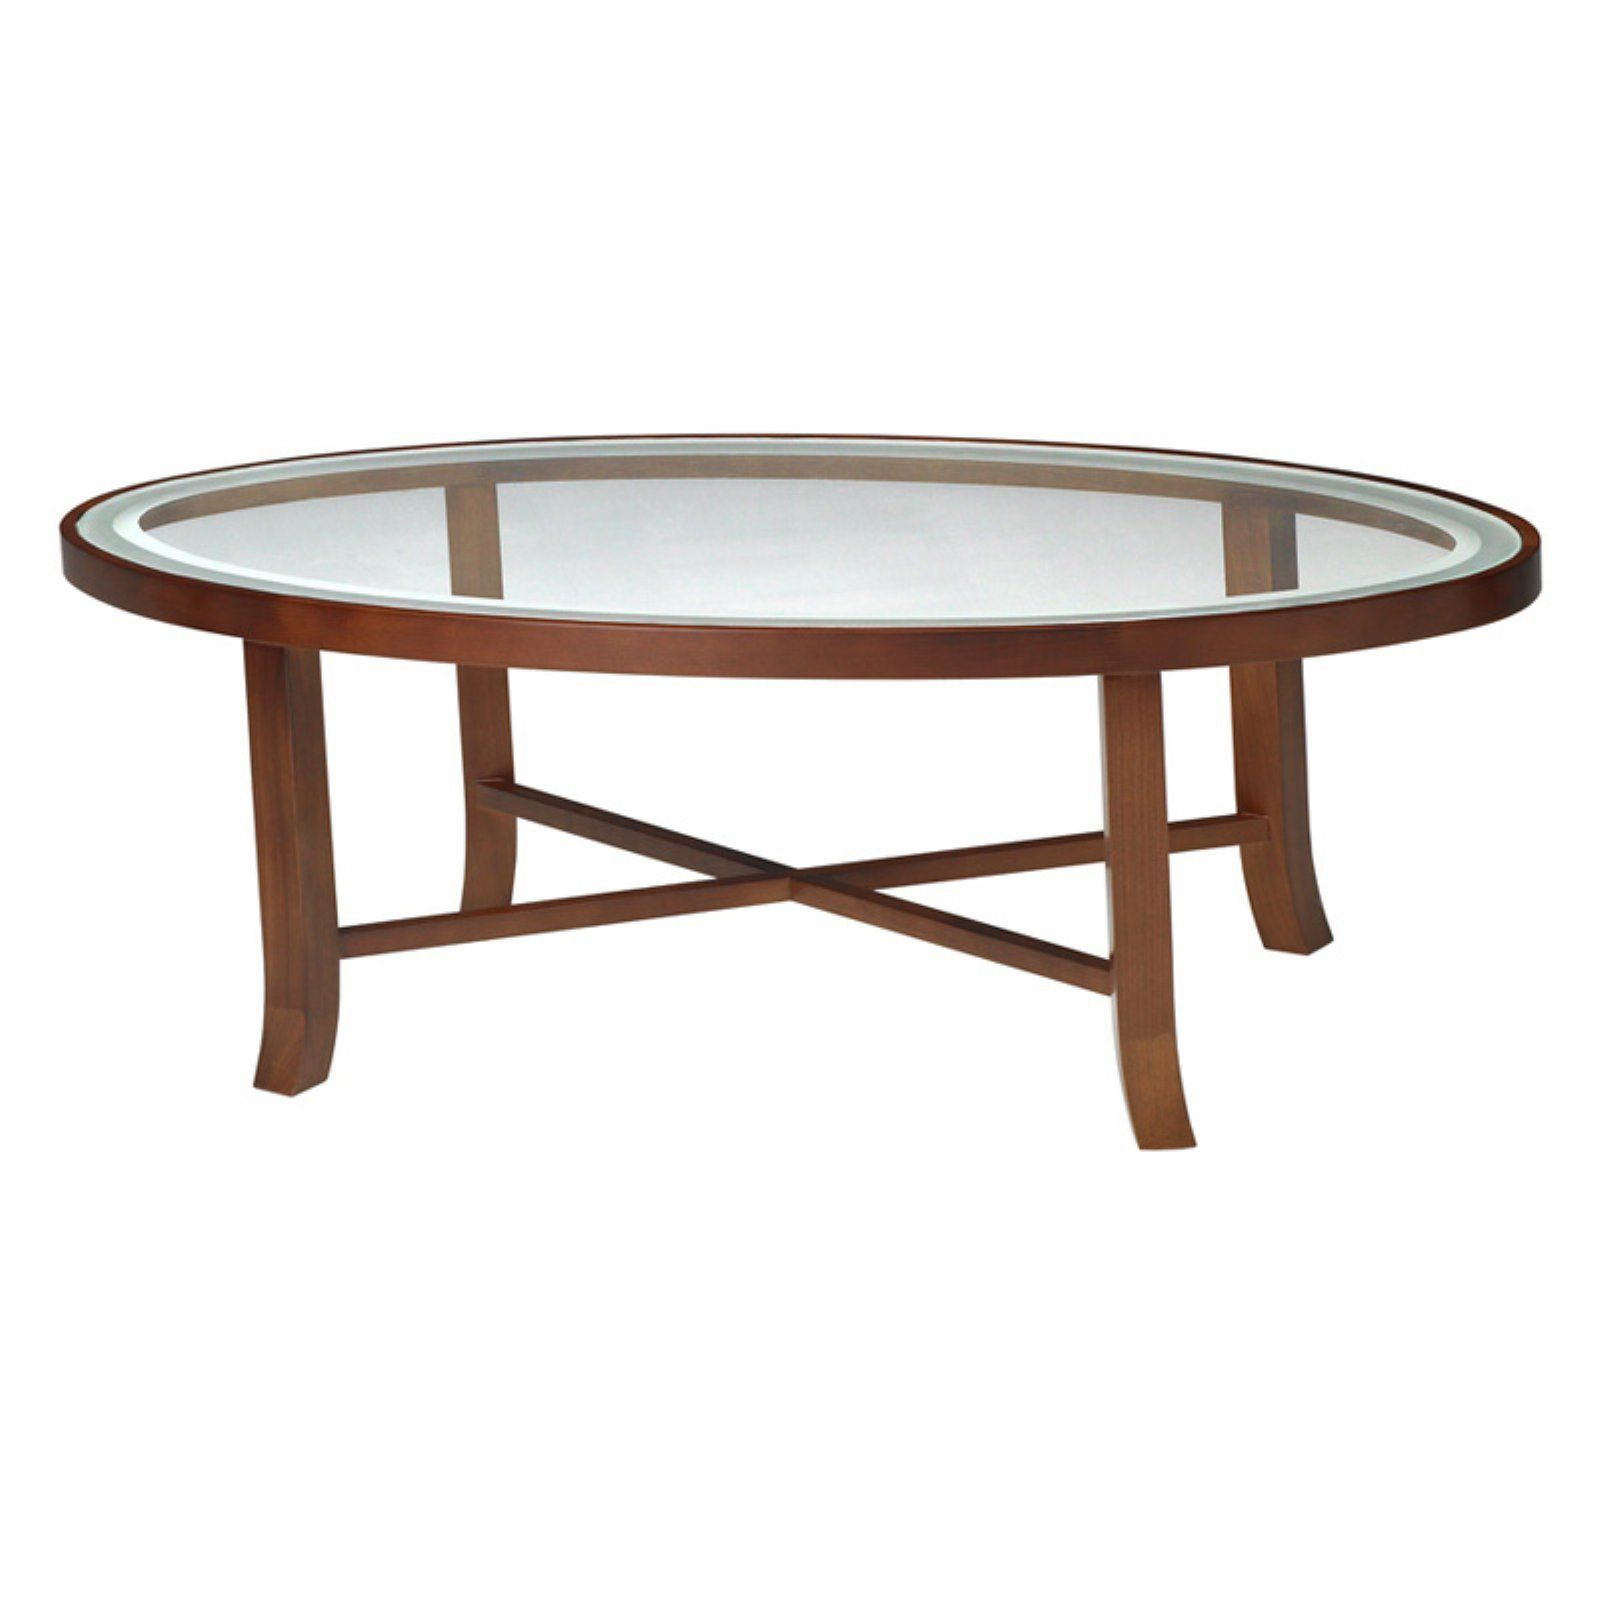 Mayline Illusion Glass Top Coffee Table In 2021 Coffee Table Oval Coffee Tables Glass Top Coffee Table [ 1600 x 1600 Pixel ]